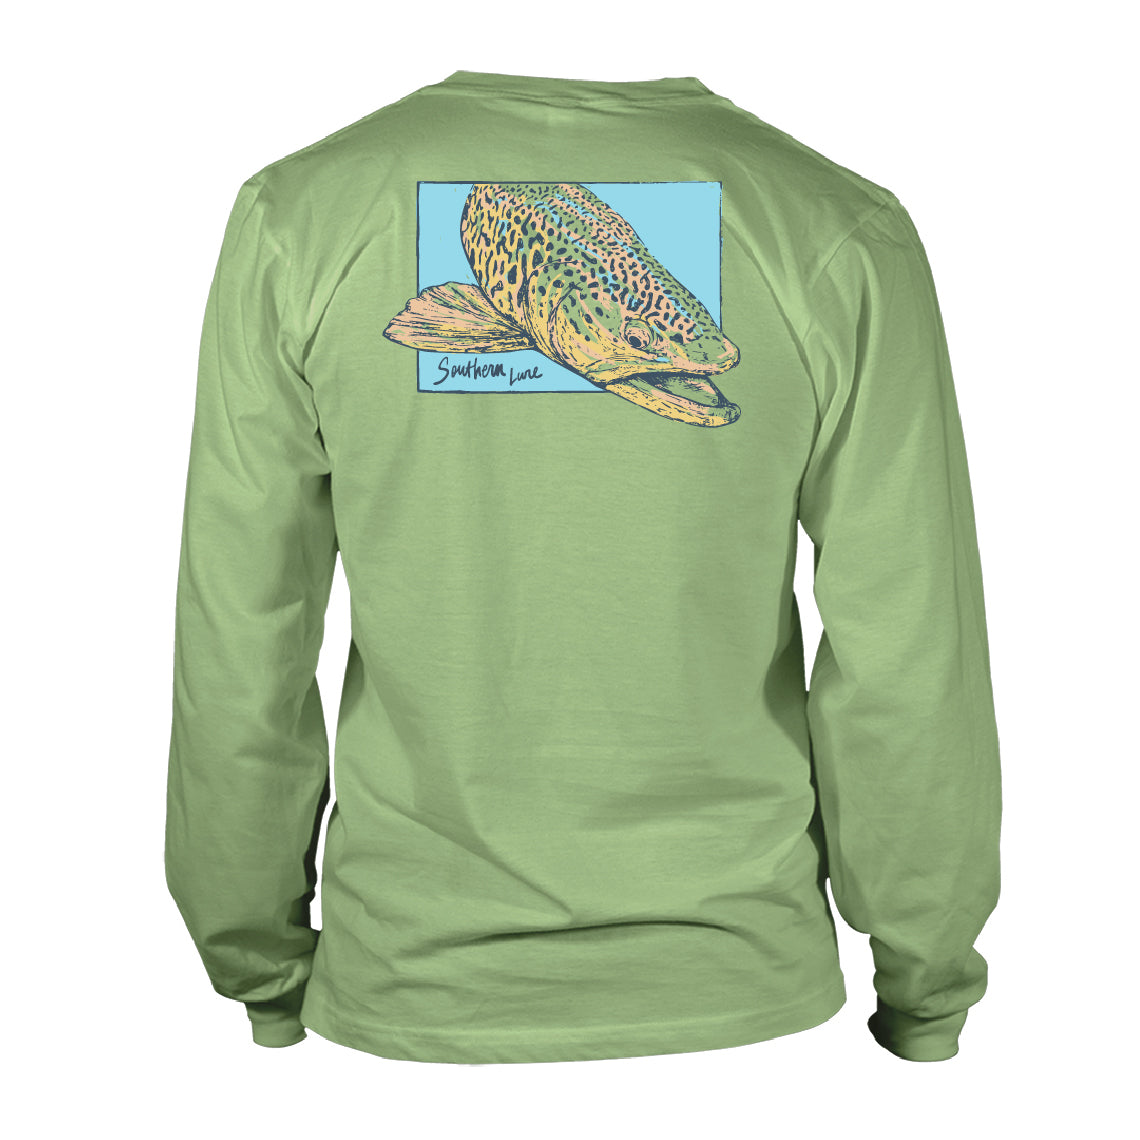 Boy's Youth & Toddler Long Sleeve Cotton T shirt - Verso Trout - Bay